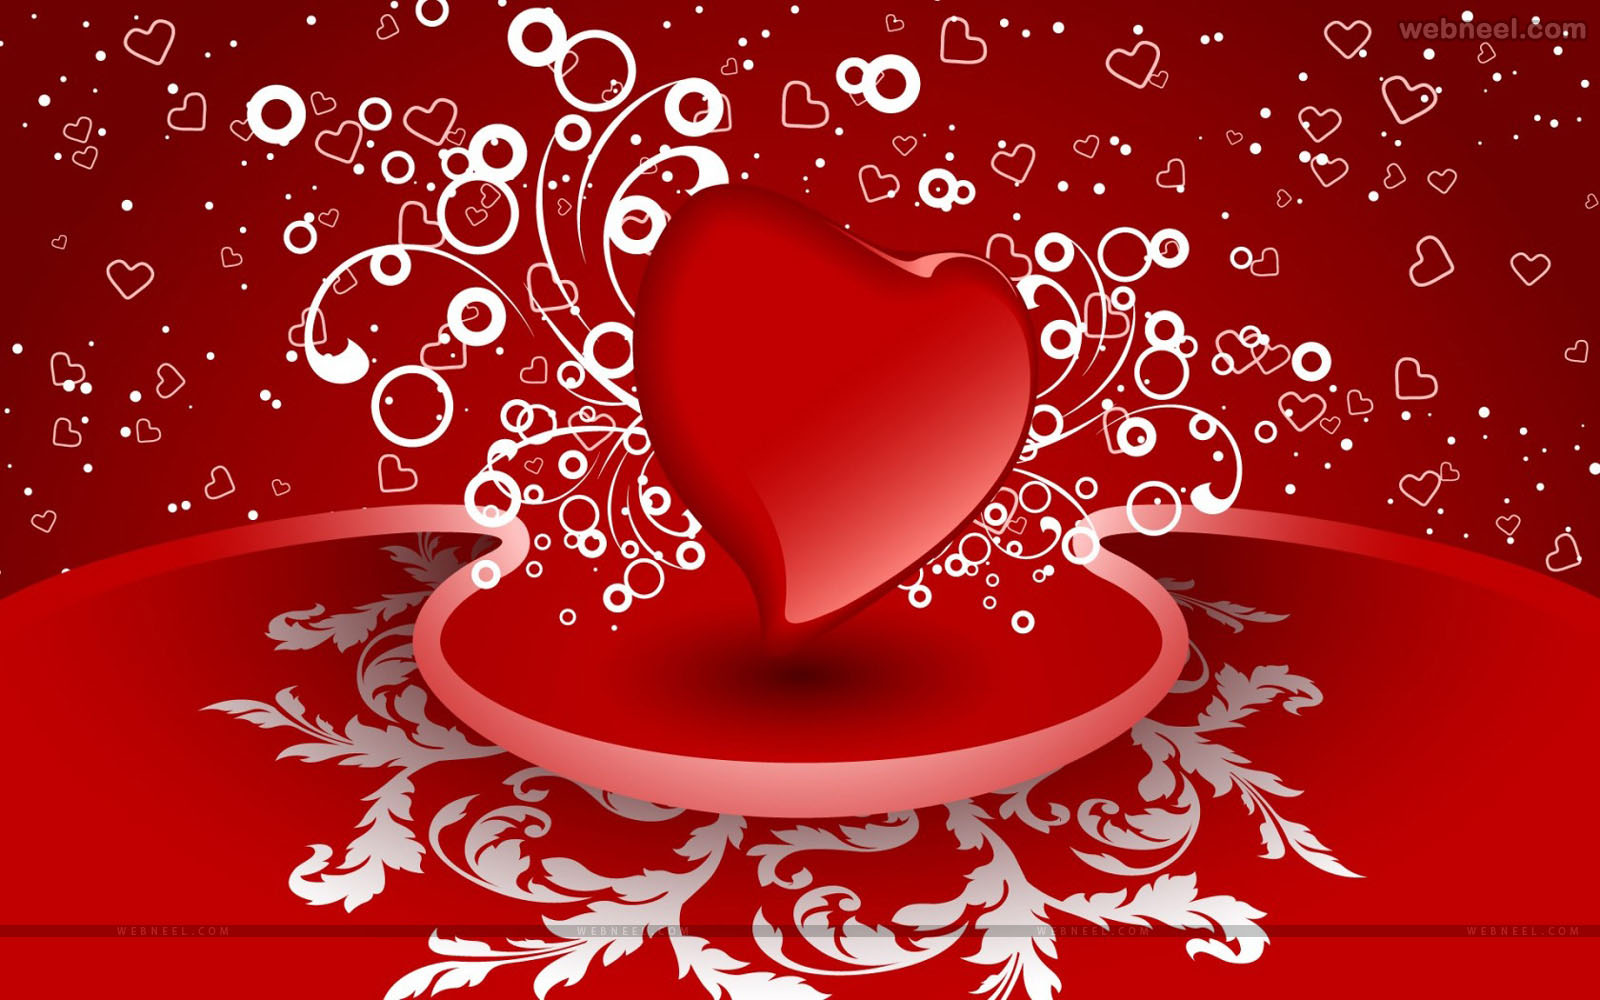 30 beautiful valentines day wallpapers for your desktop valentine day wallpaper valentine day wallpaper m4hsunfo